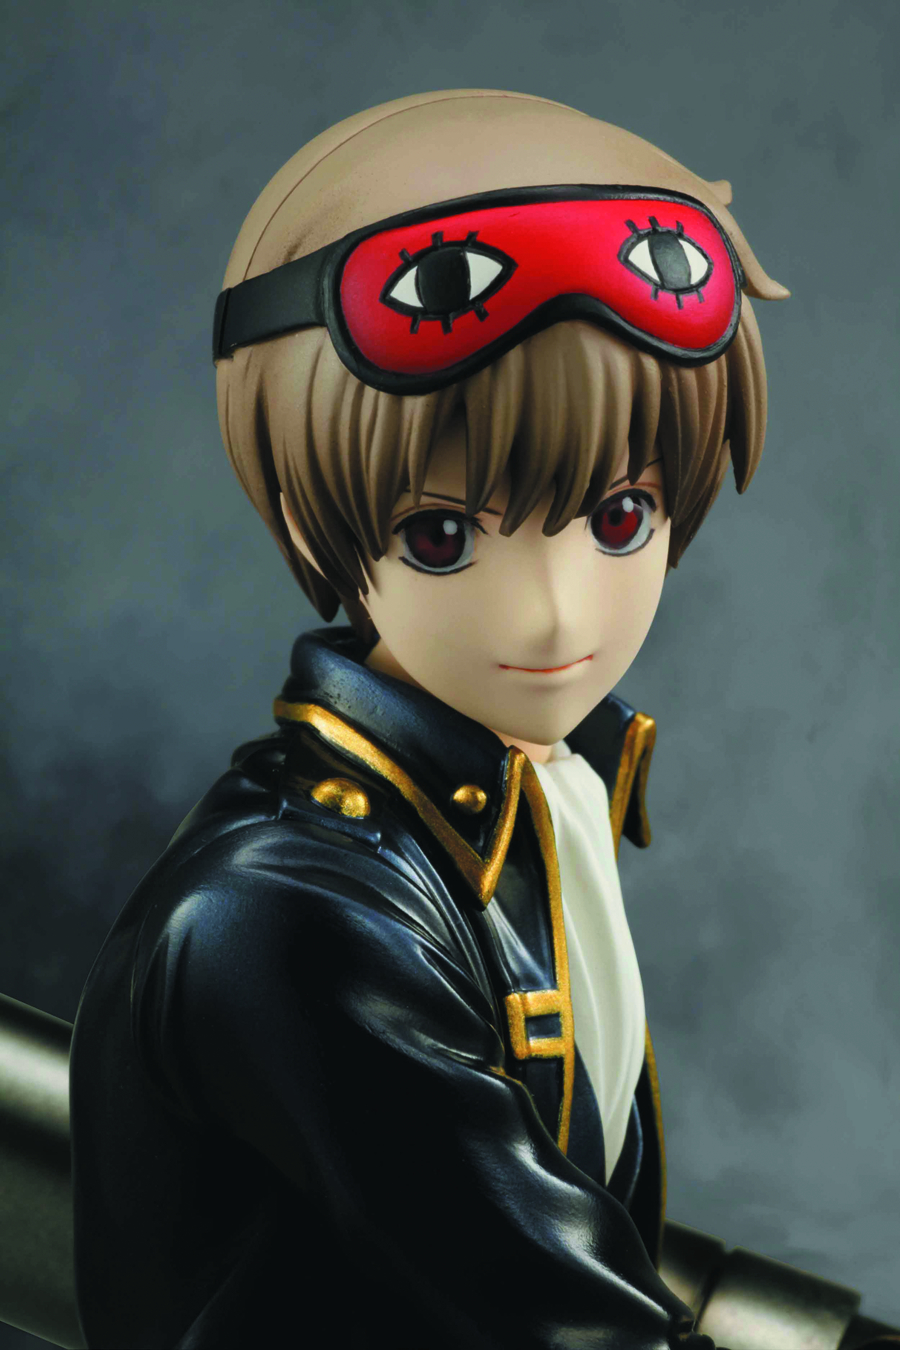 GINTAMA OKITAI SOUGO GEM PVC FIG